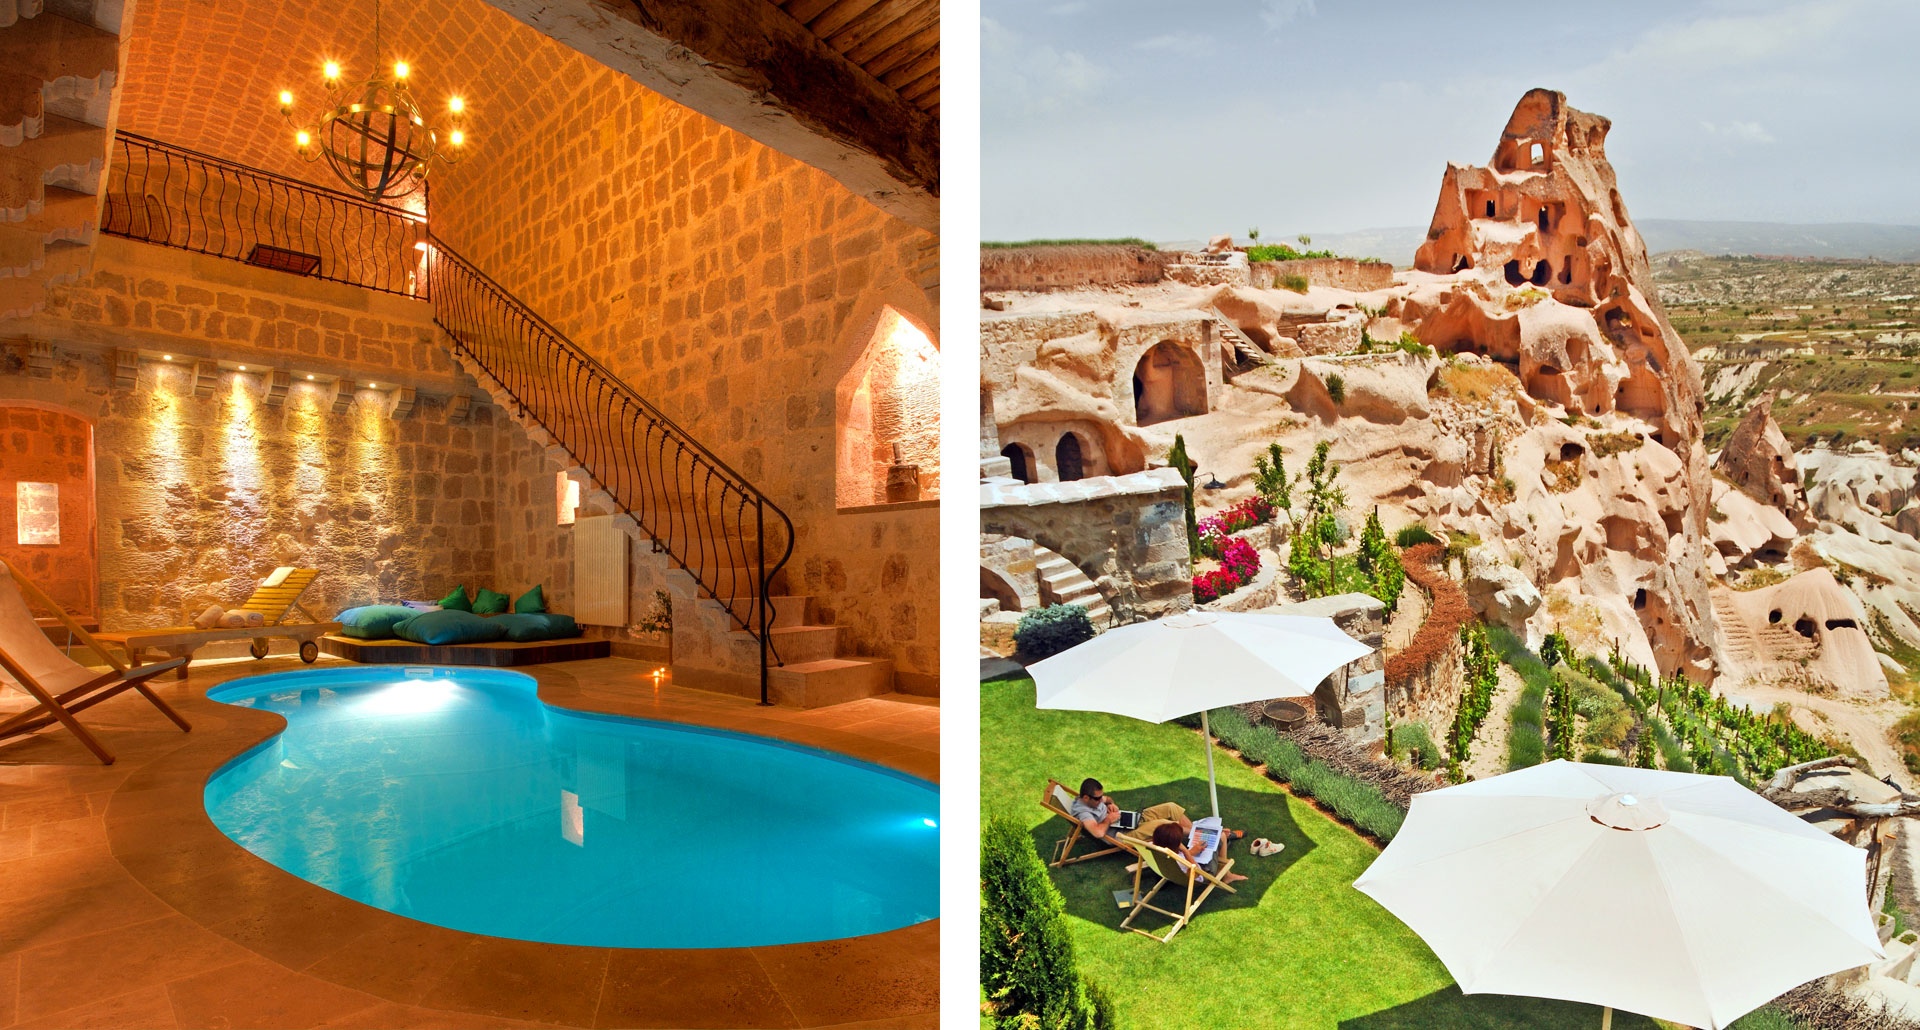 Jacuzzi Pool Argos Cave Hotels Of Cappadocia Turkey Travel Guides The Agenda By